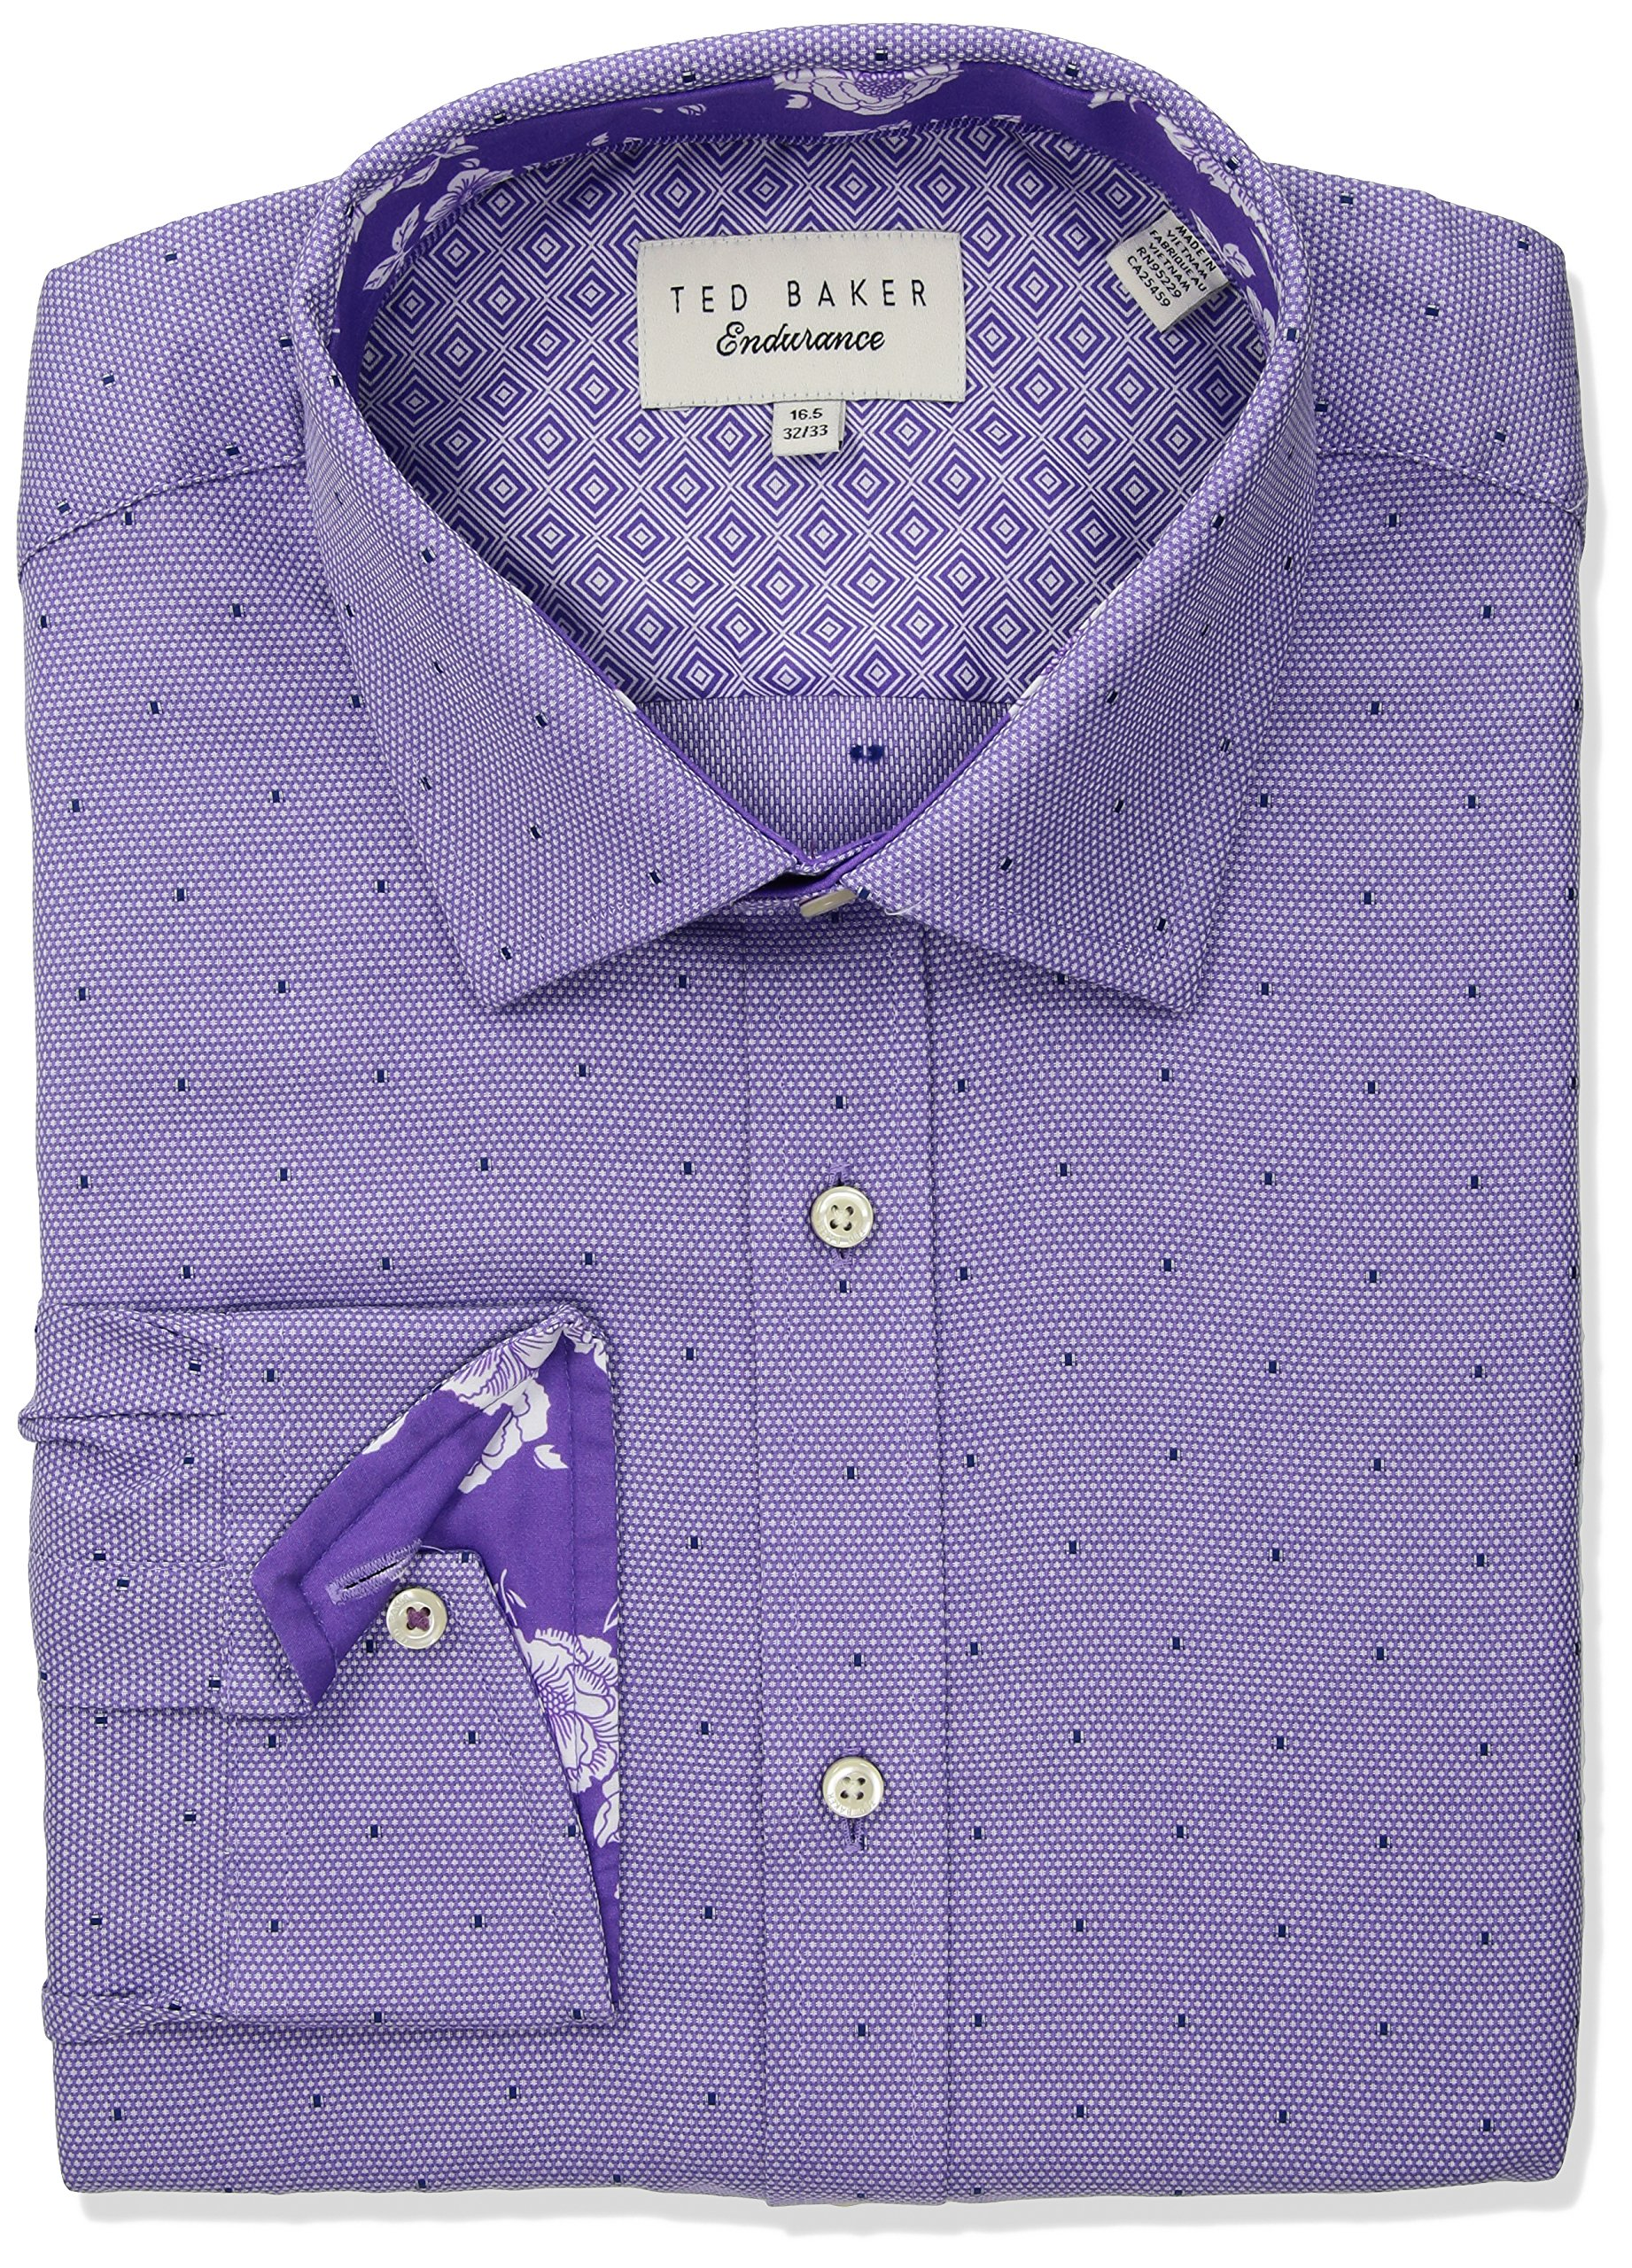 Ted Baker Men's greave Slim Fit Dress Shirt, Purple, 16'' Neck 34''-35'' Sleeve